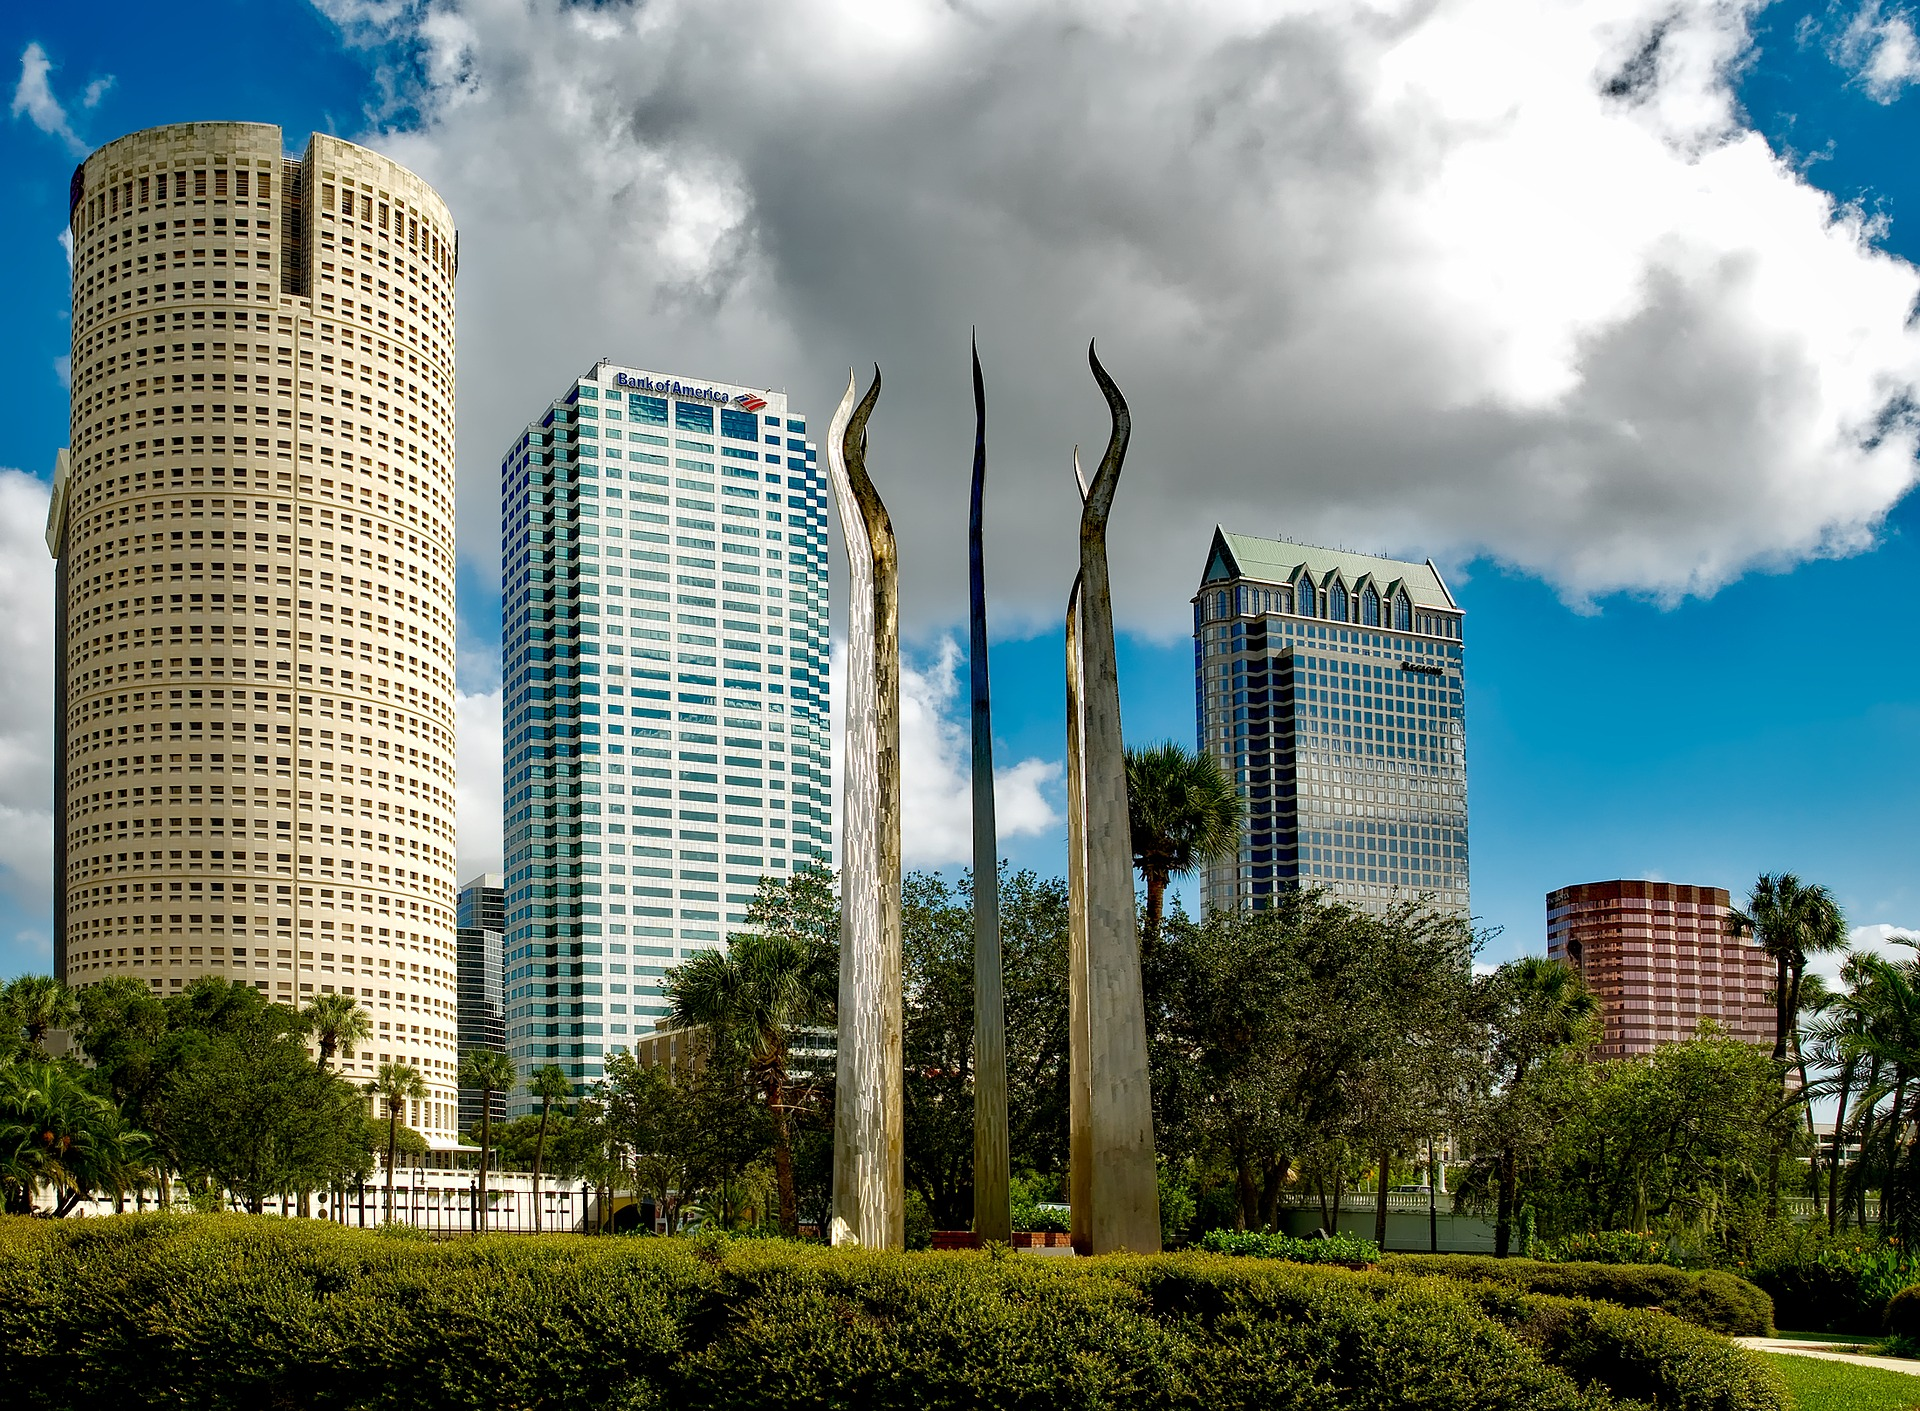 A local's guide to Tampa